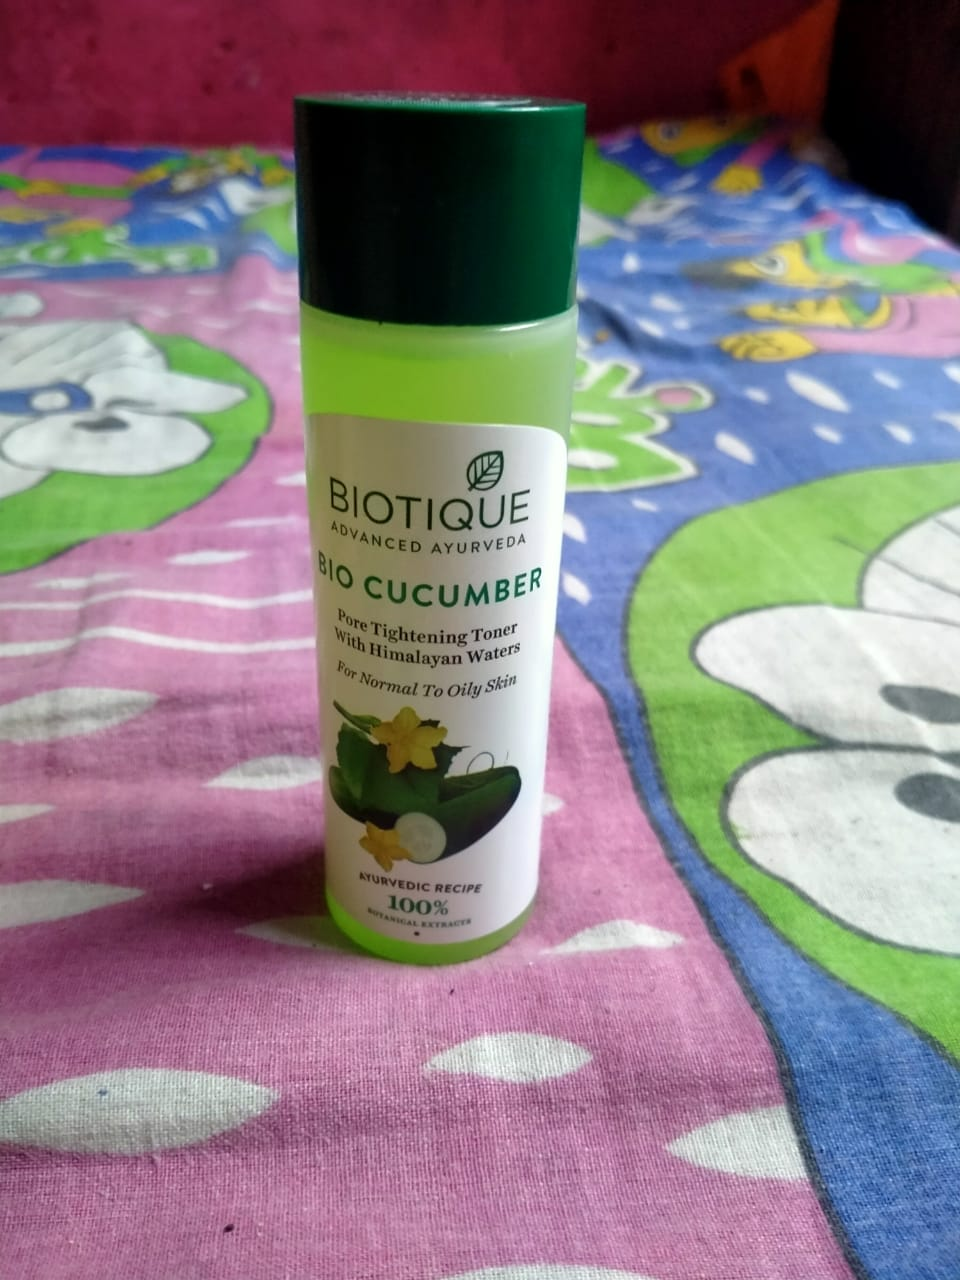 Biotique Bio Cucumber Pore Tightening Toner-It does what it claims-By ishika_shaw-1